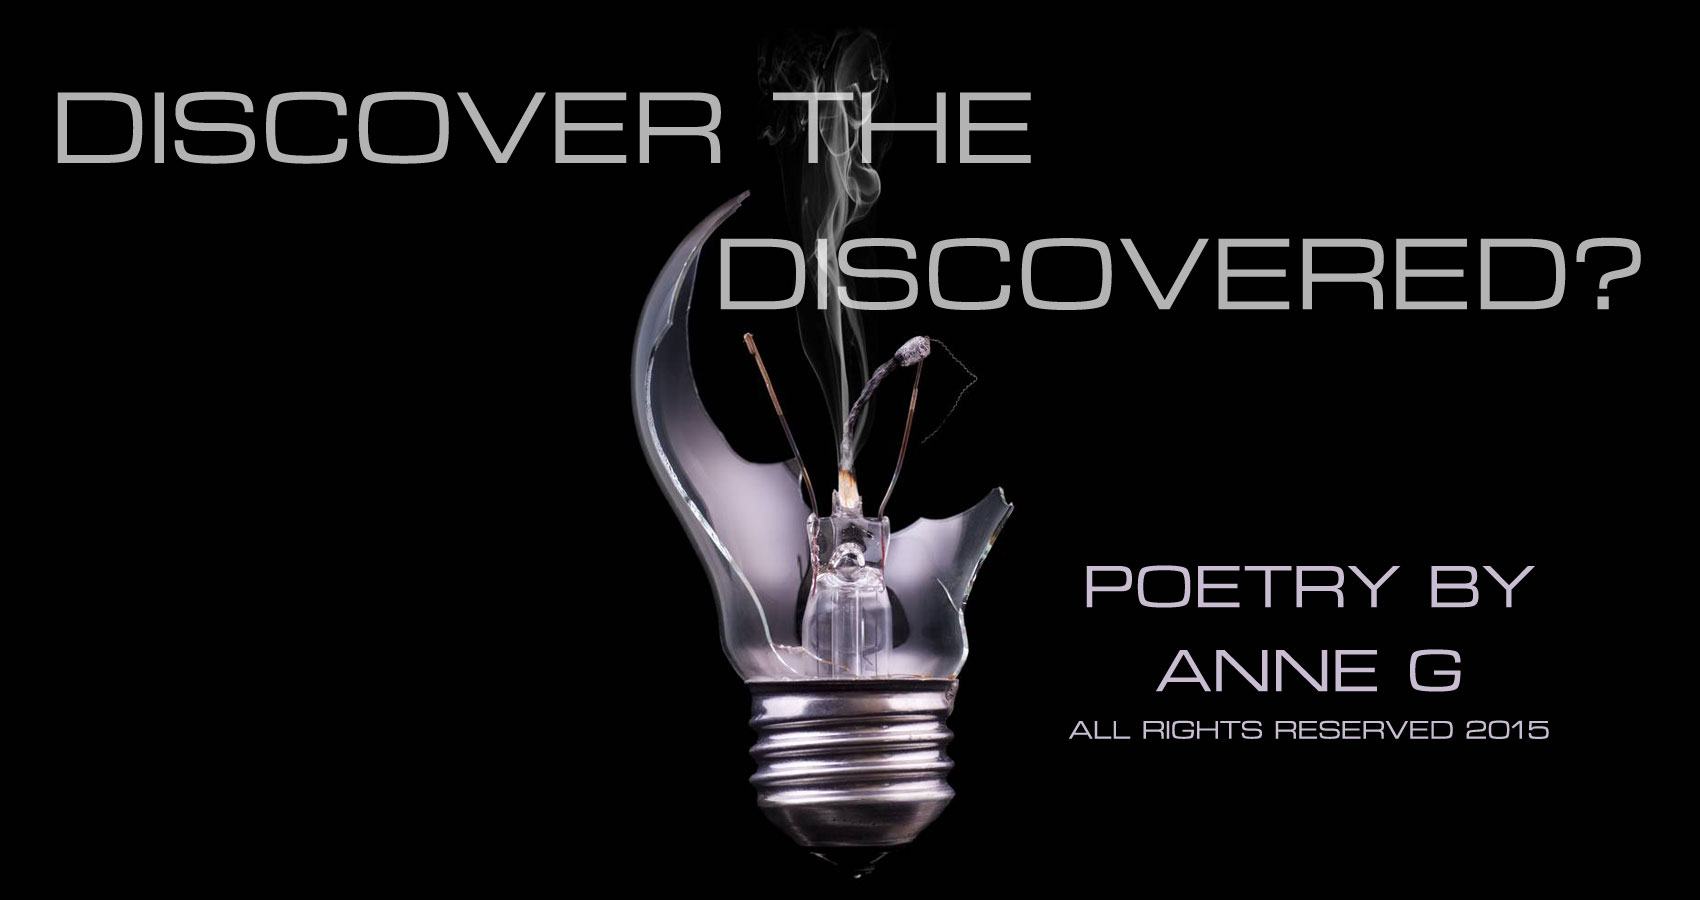 Discover the Discovered? poetry at spillwords.com by Anne G